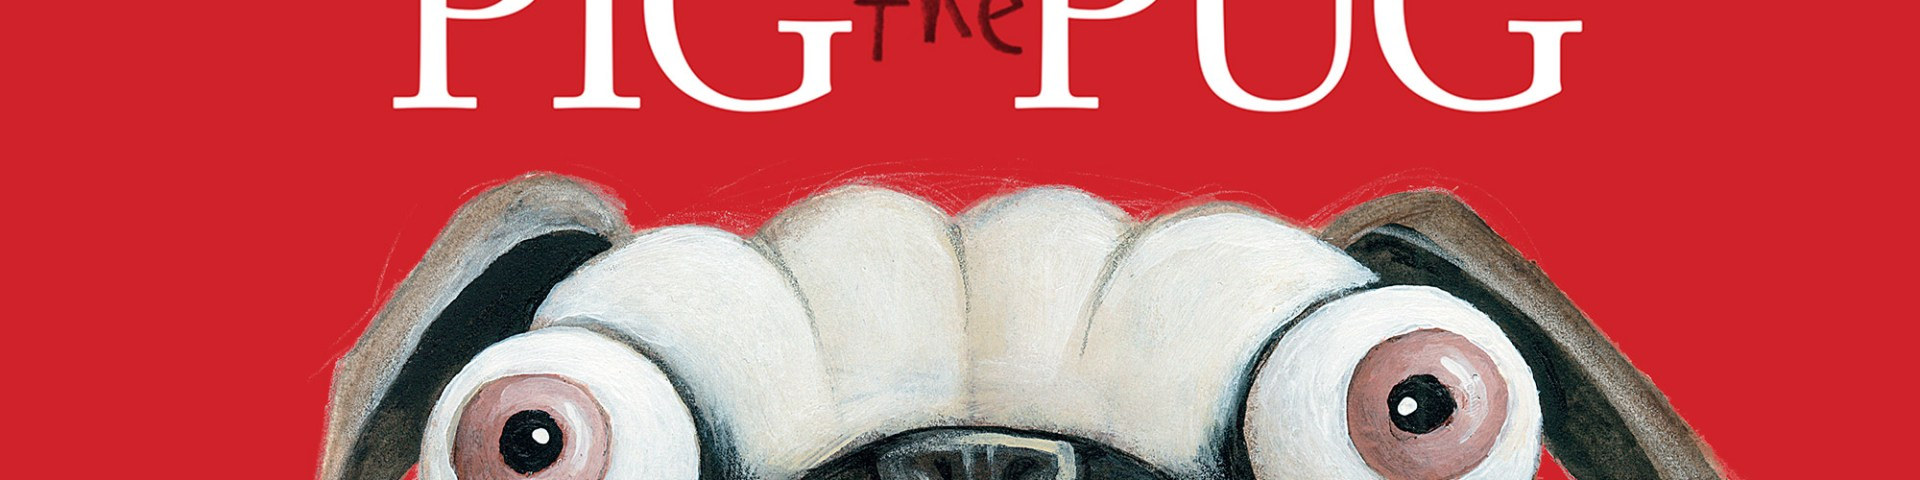 Pig the Pug featured image